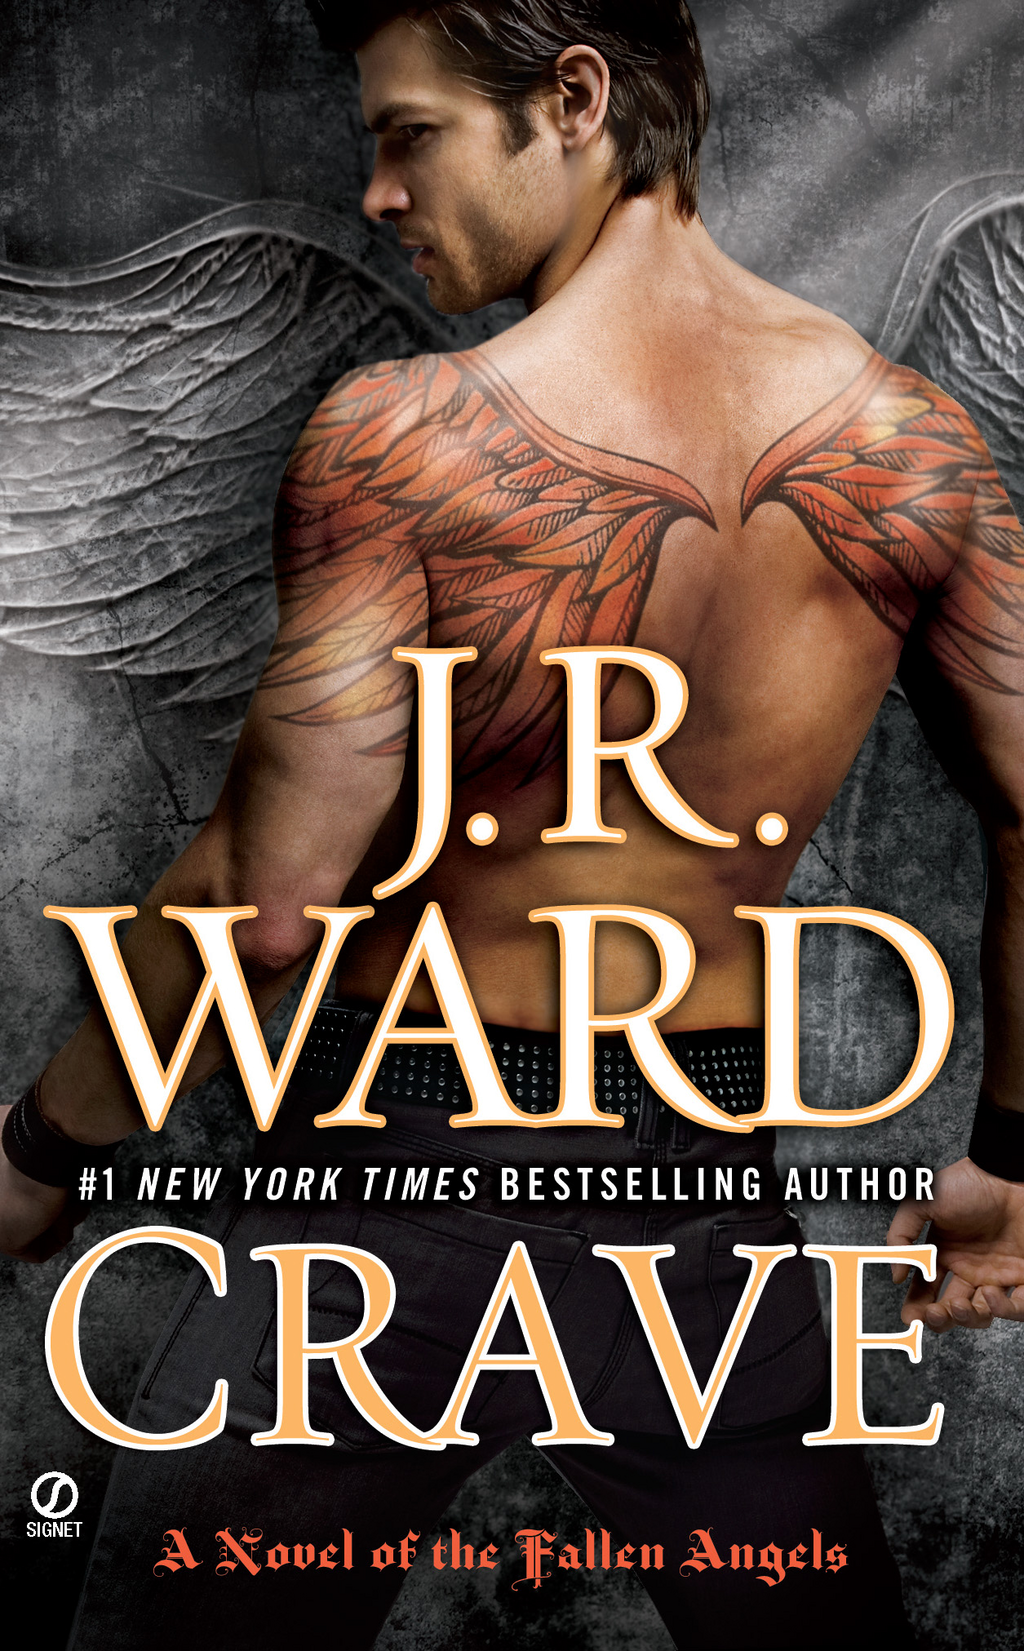 Crave: A Novel of the Fallen Angels By: J.R. Ward